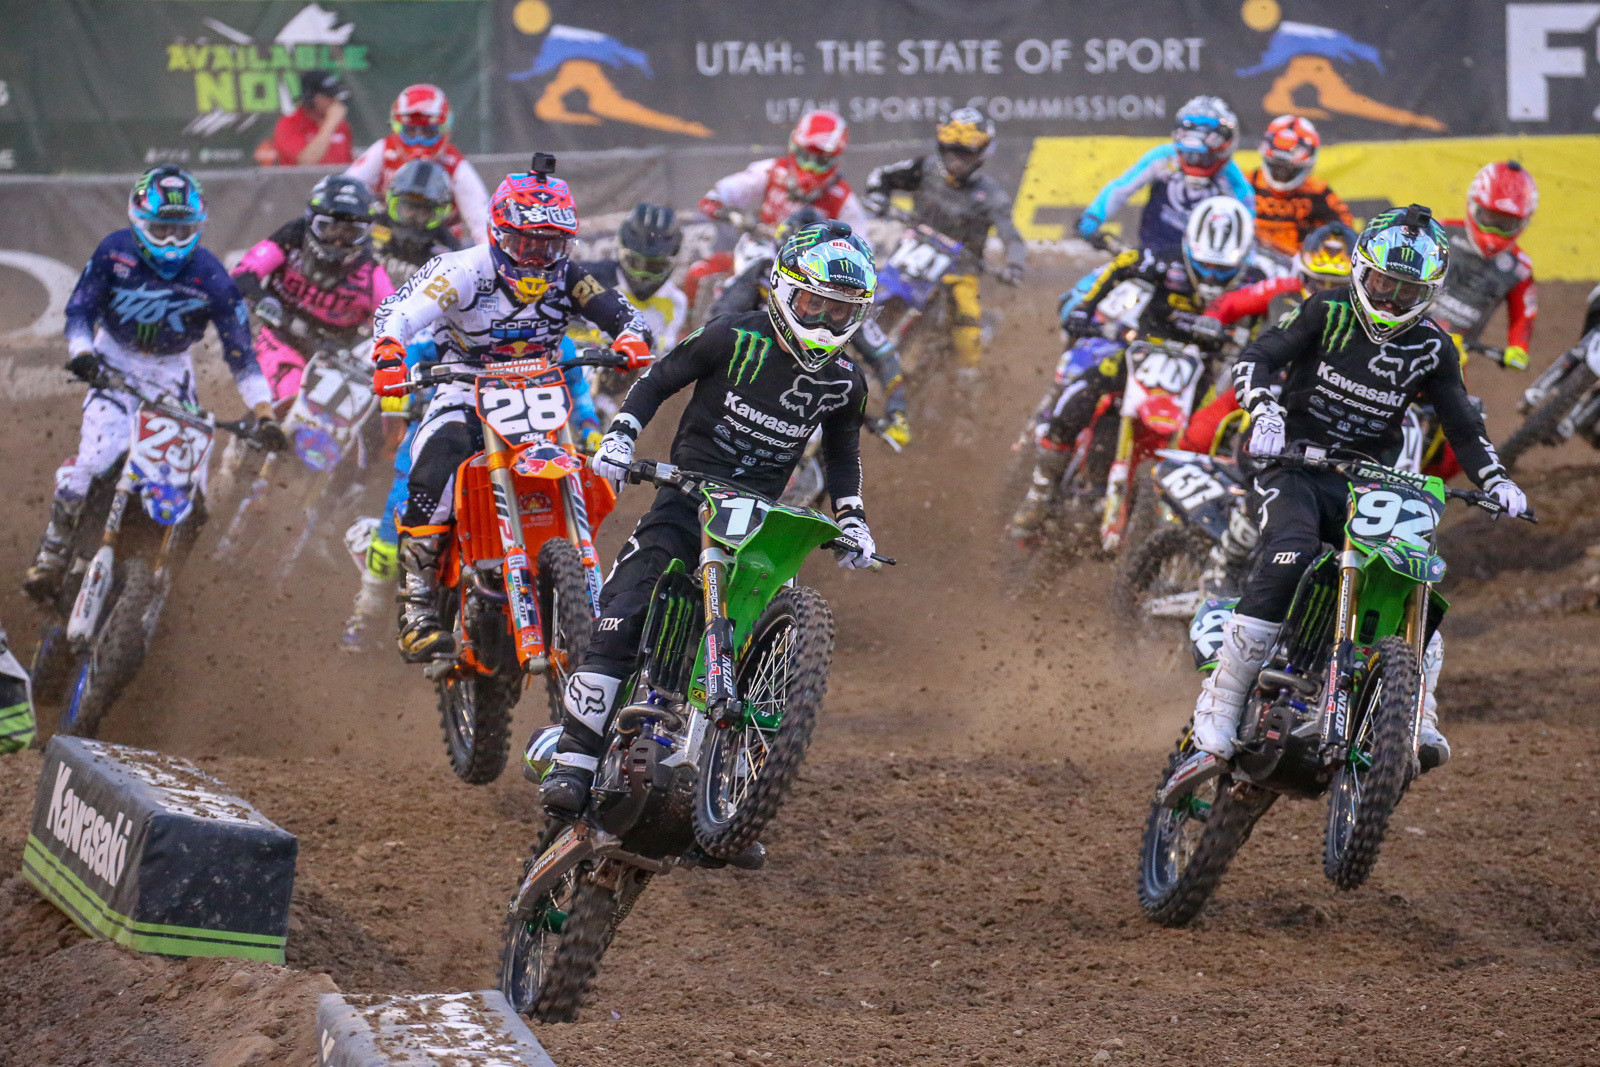 Joey Savatgy was on fire during the 250 West heat, going wire-to-wire to take the win.